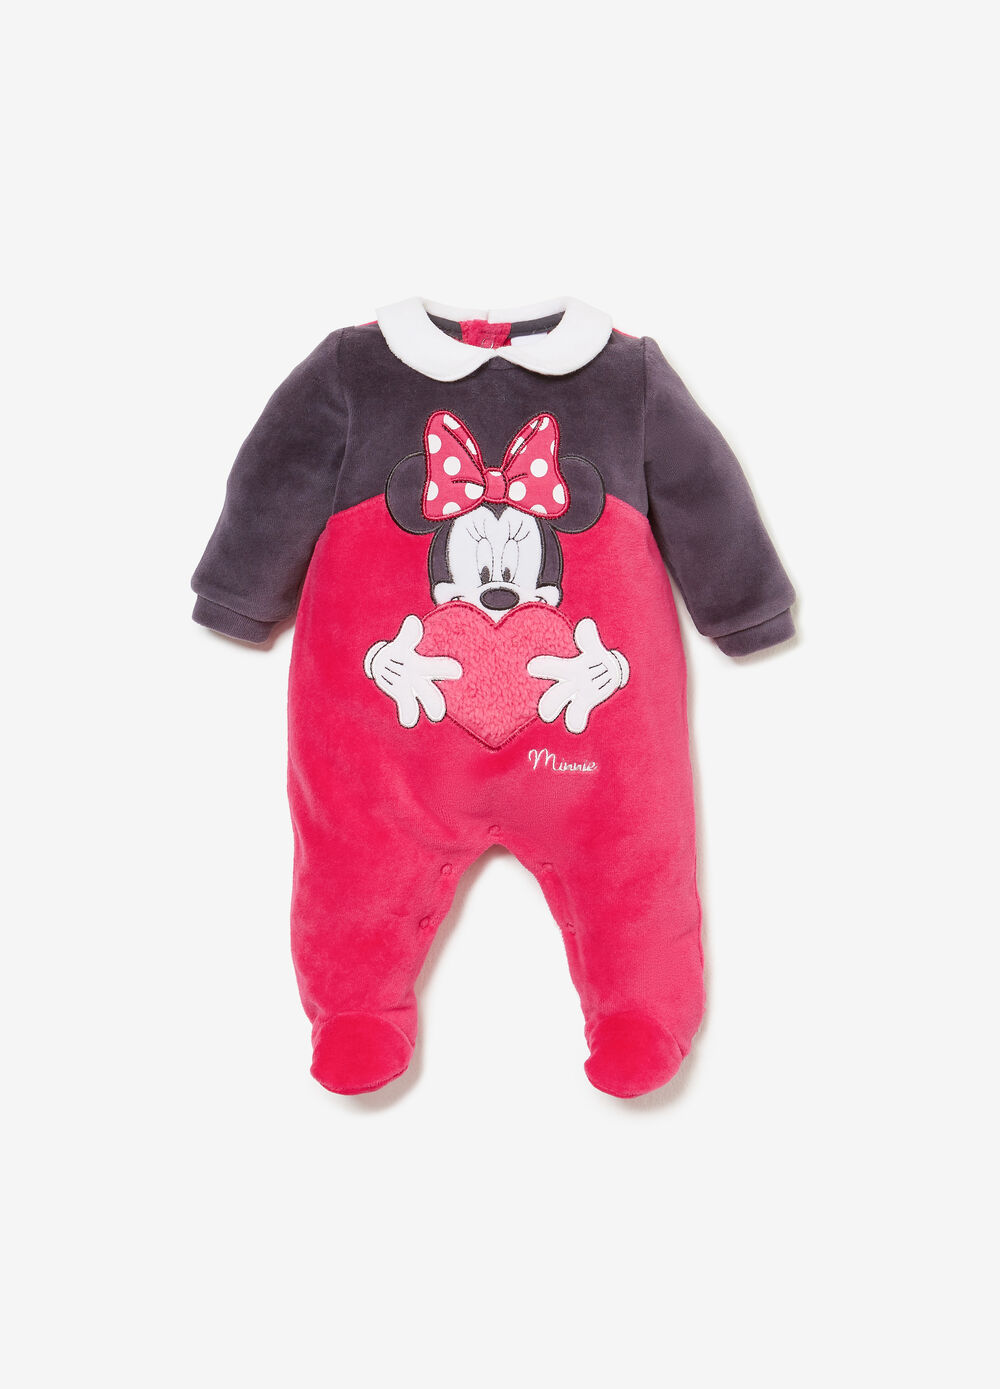 BCI sleepsuit with Minnie Mouse patch